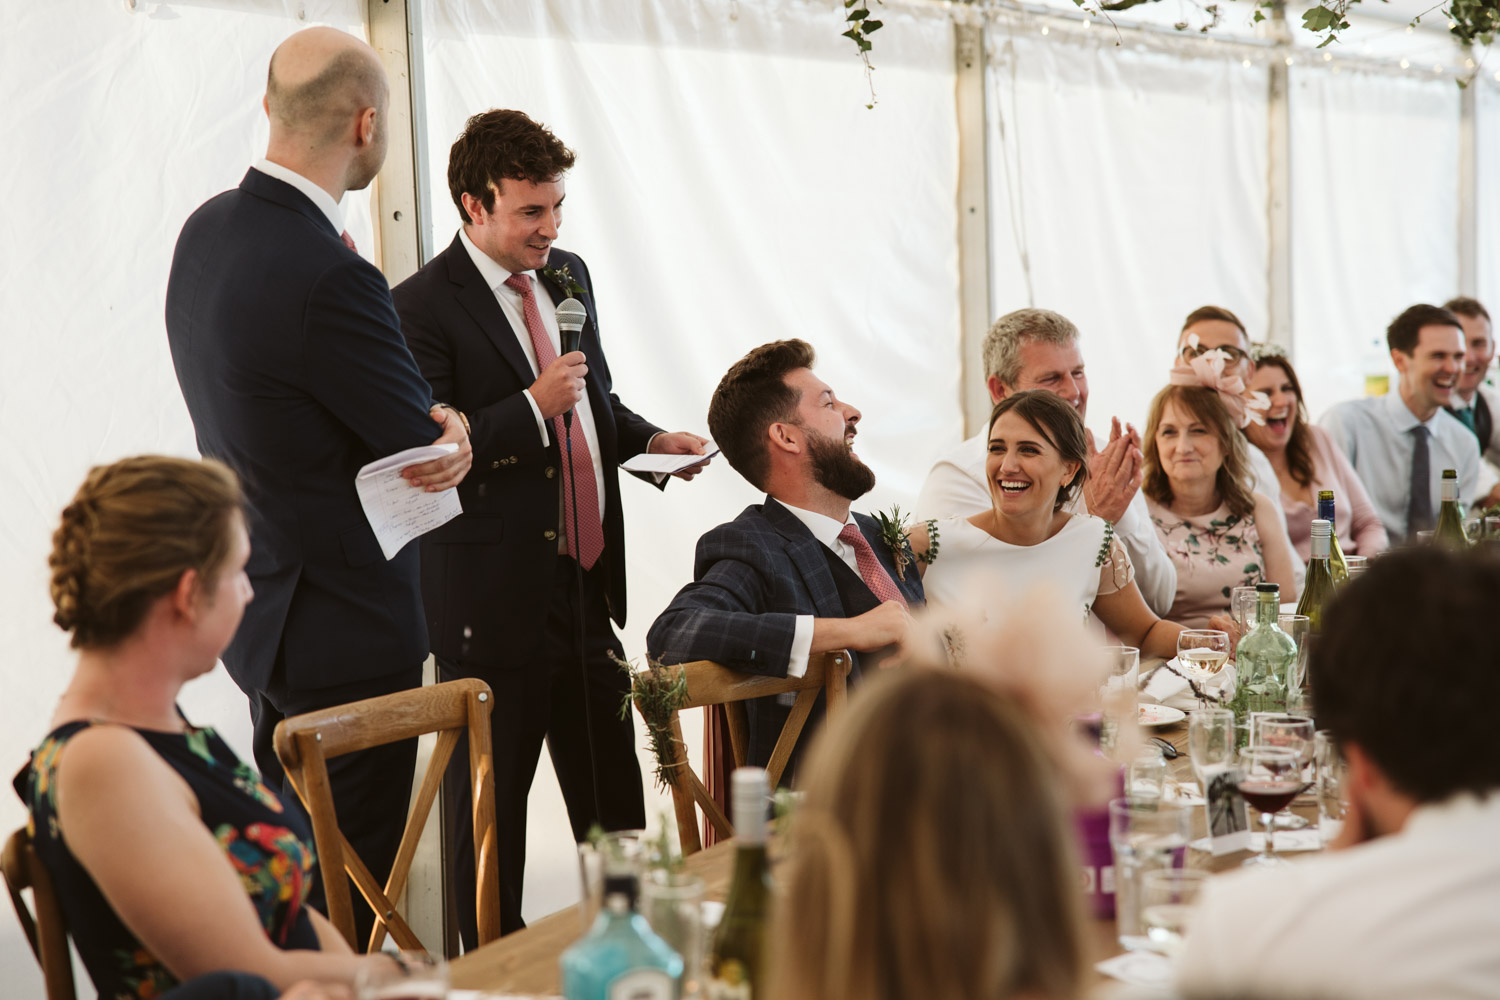 the best man embarrassing the groom and laughing